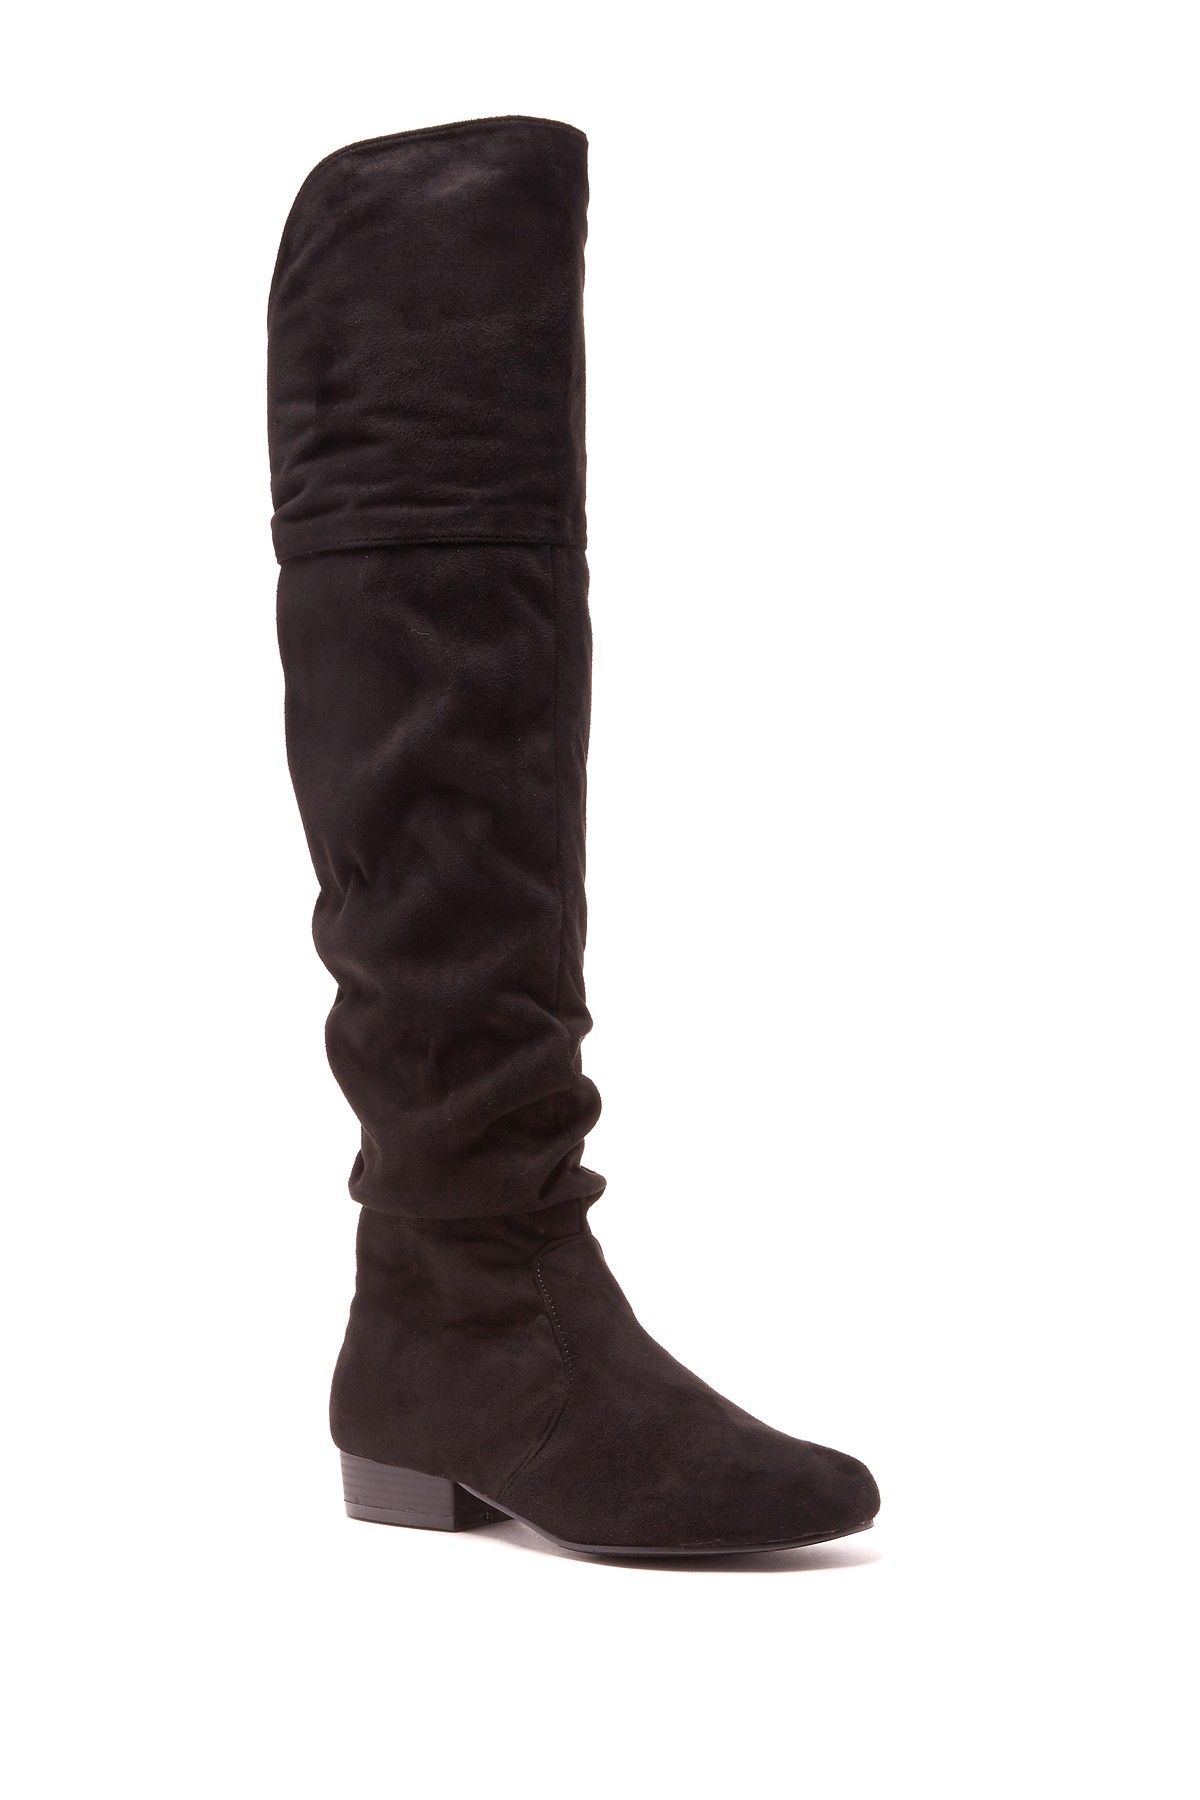 41b9e35dd3a Perrin Boot by Bucco on  nordstrom rack